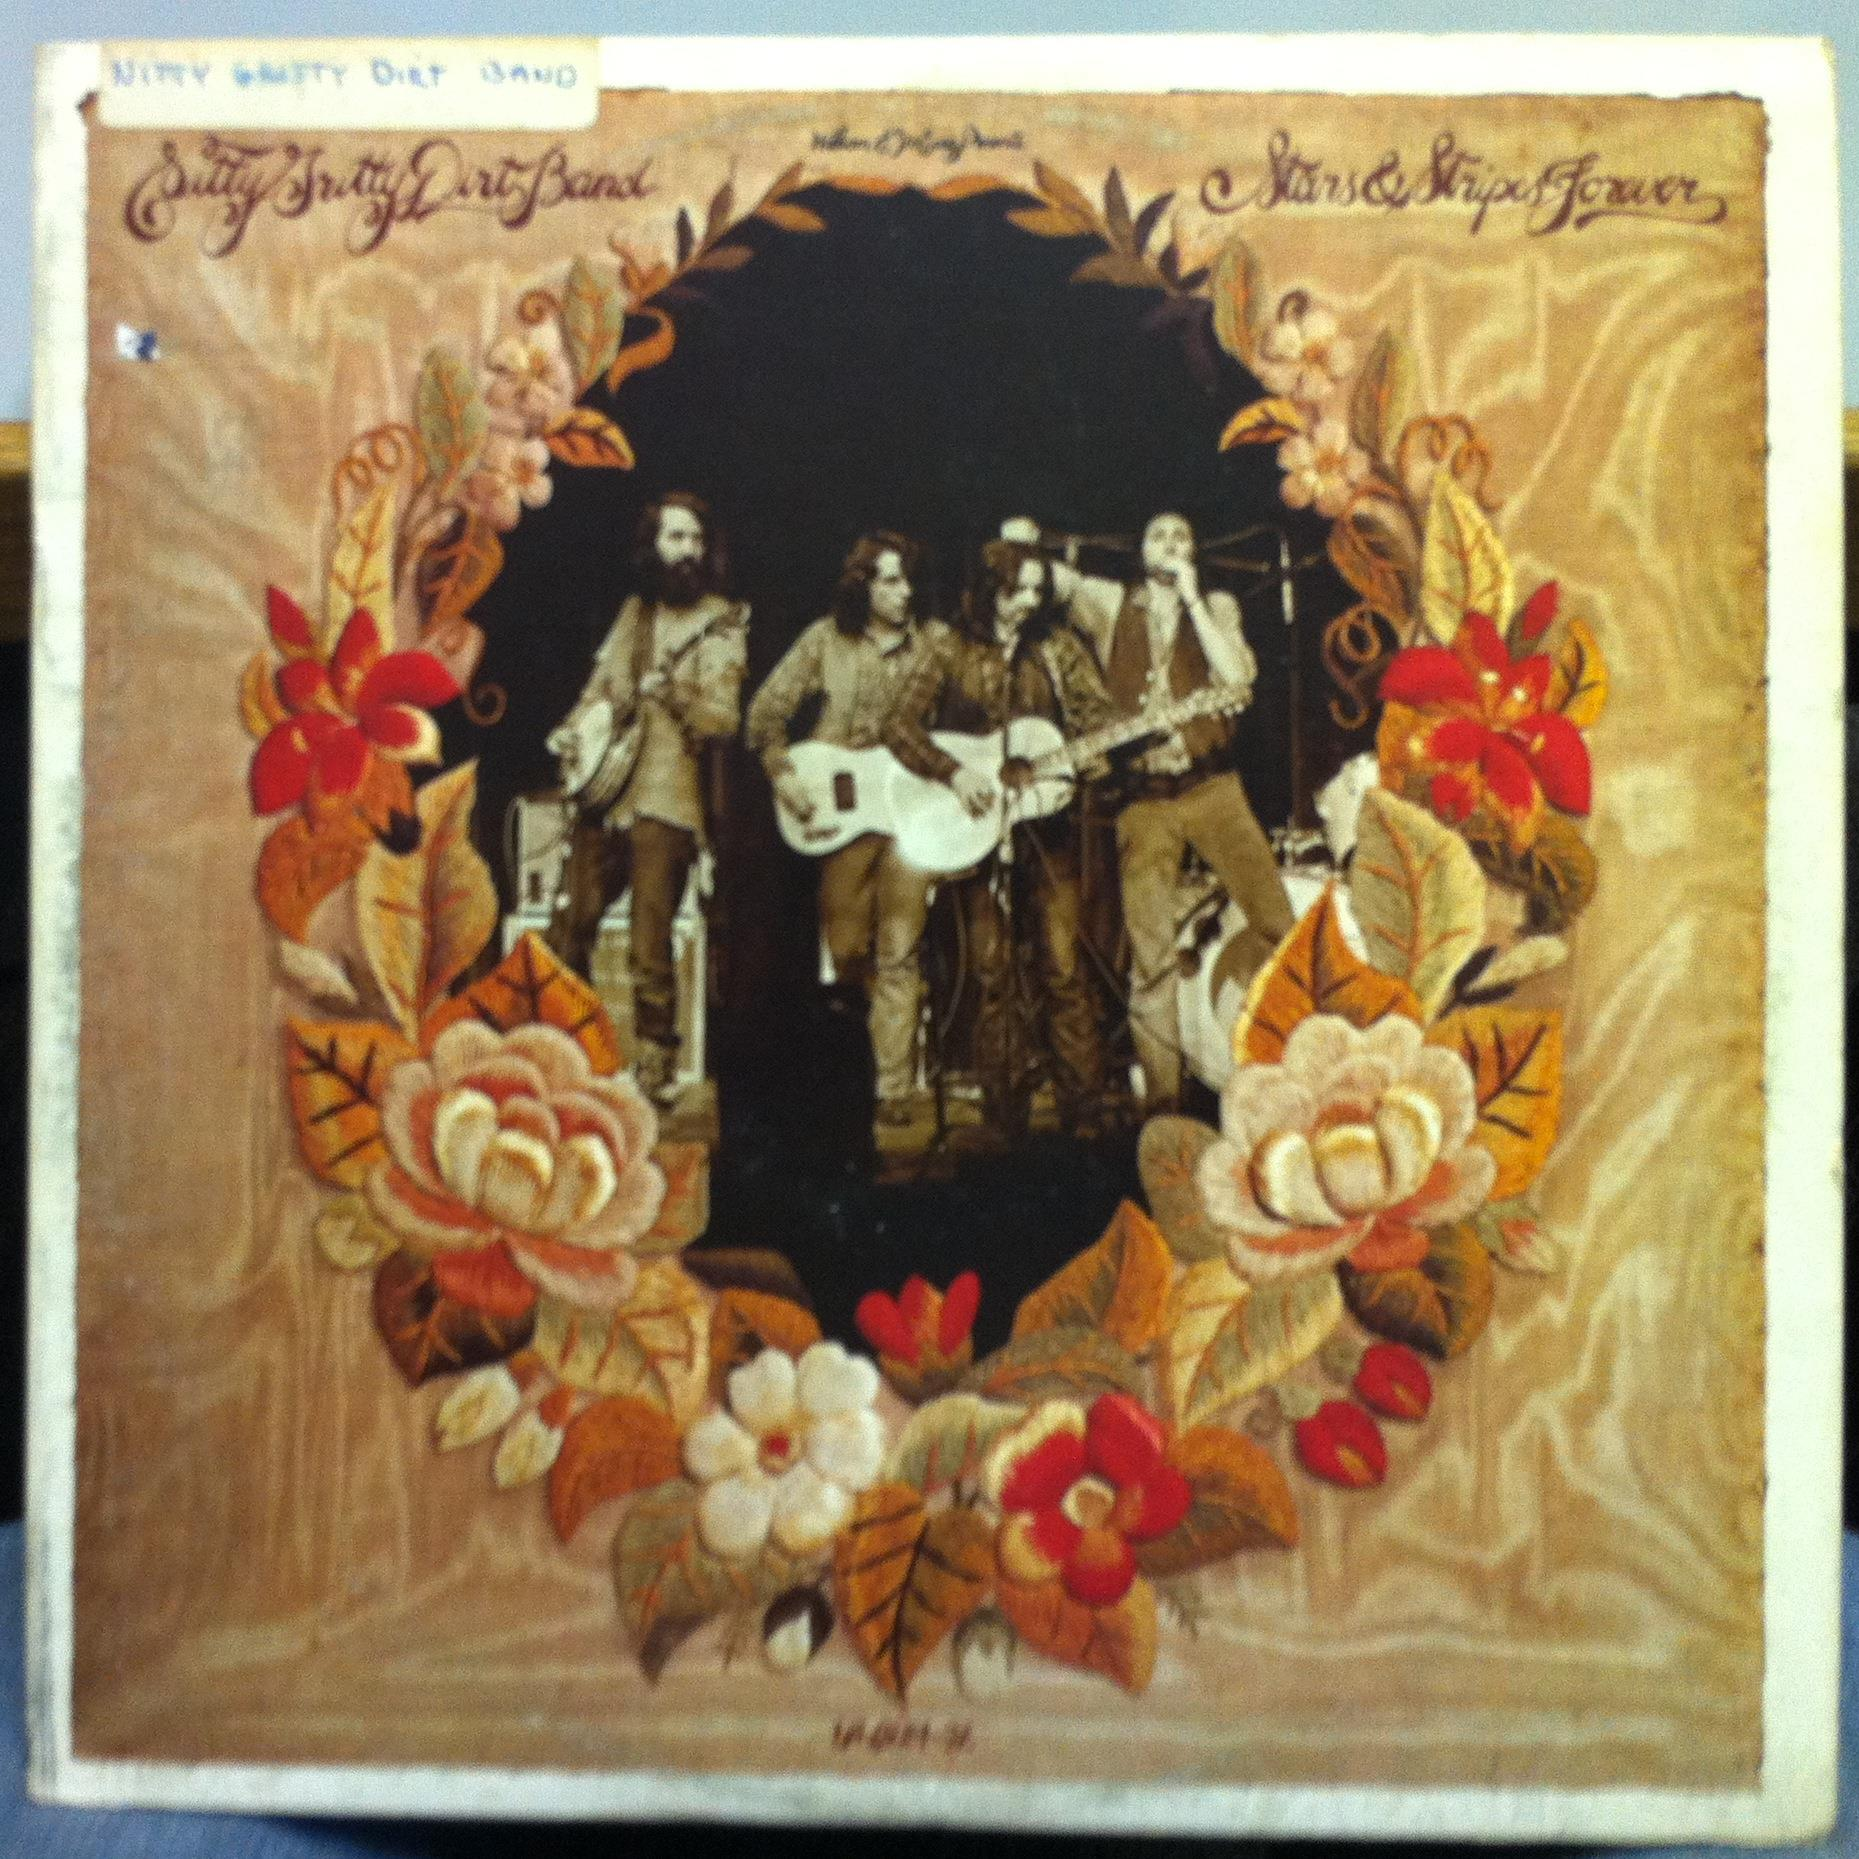 Nitty Gritty Dirt Band Nitty Gritty Dirt Band Records Lps